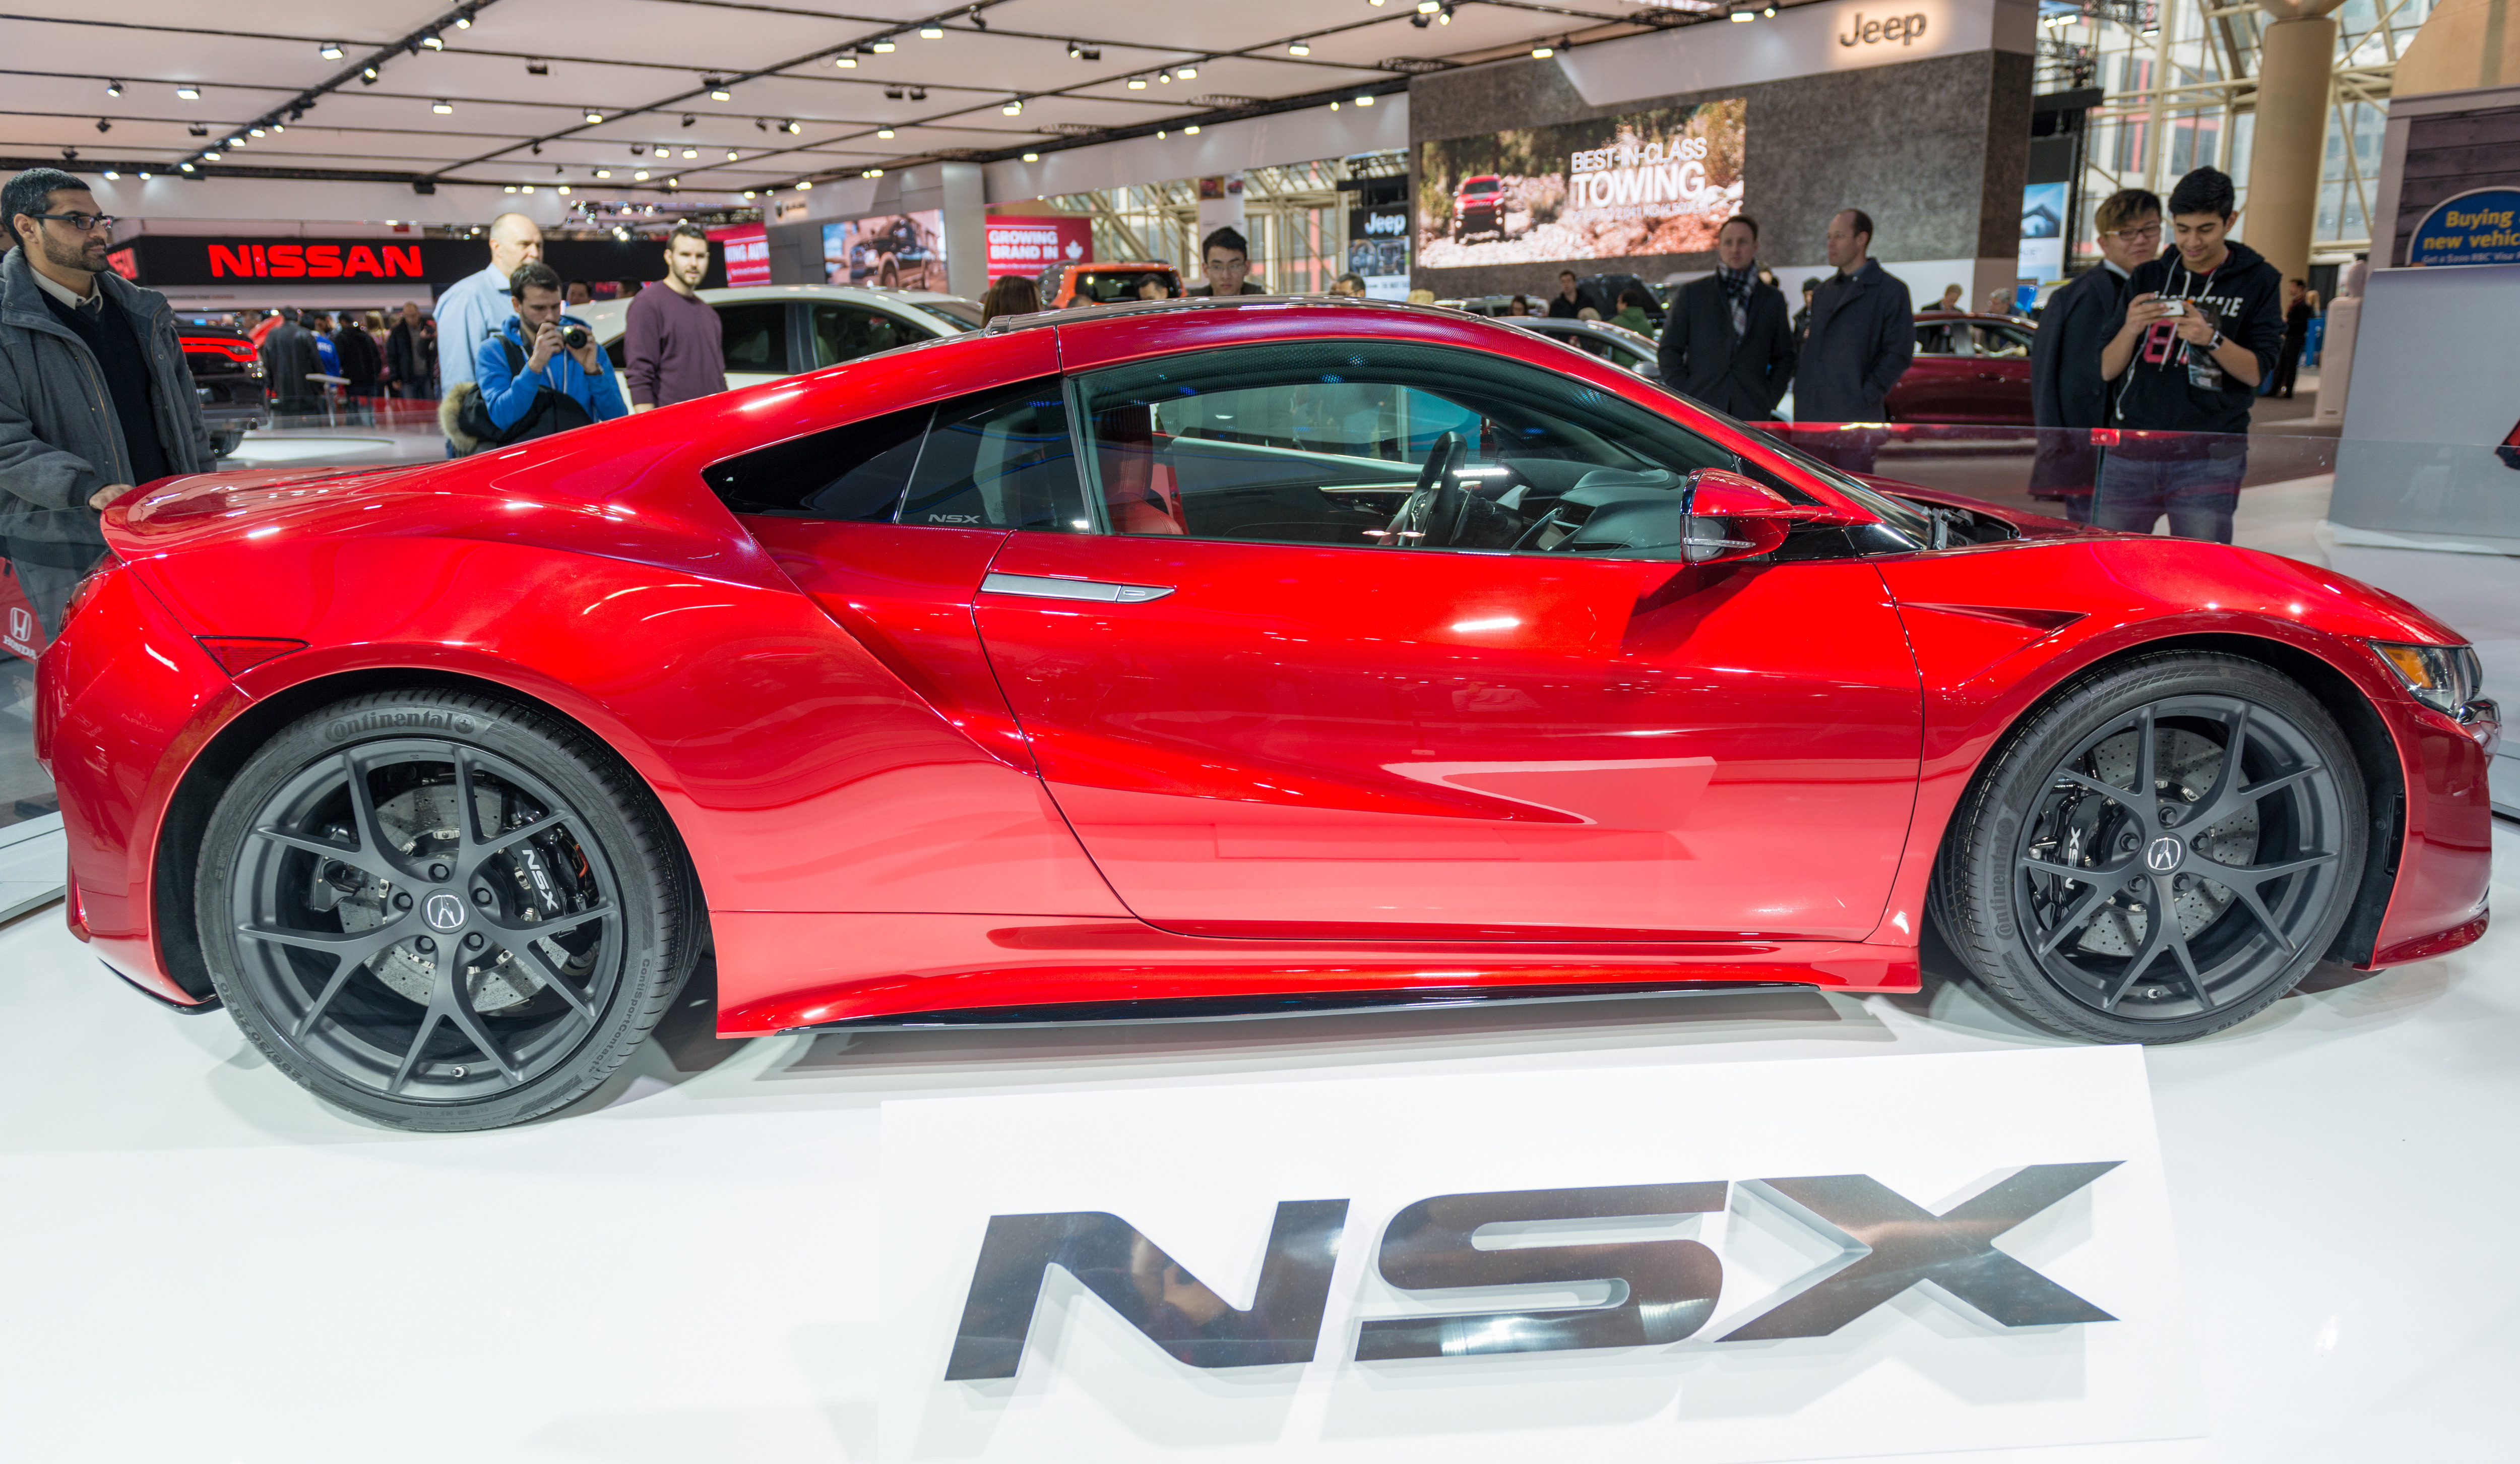 Acura NSX in the Canadian International AutoShow, CIAS for